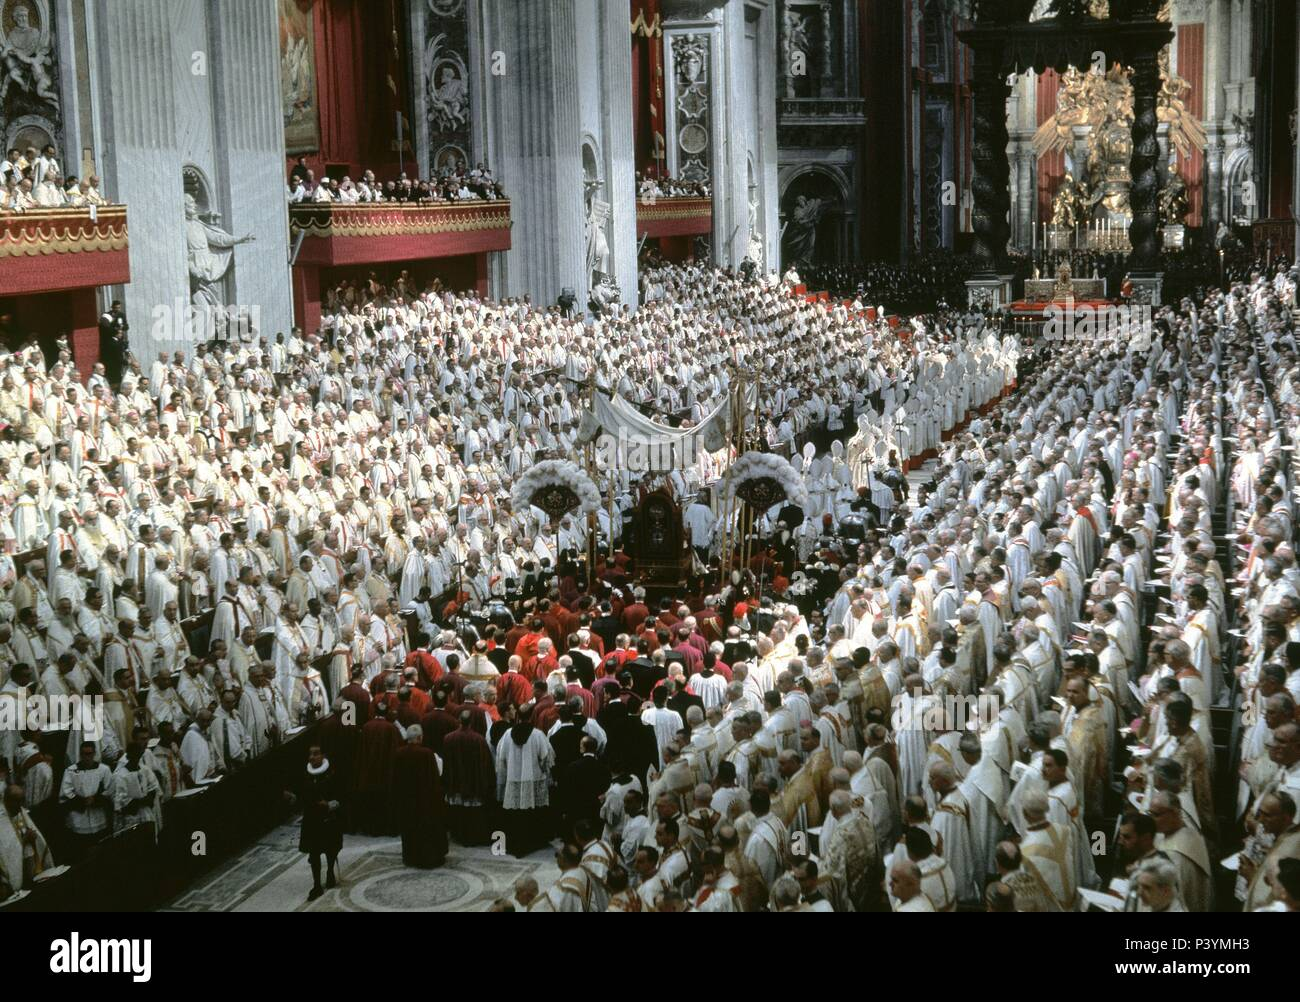 Véronique lévy dénonce le clonage, le Meshom dans le Kadosh hakadesh The-second-vatican-council-october-11-1962-december-8-1965-vatican-saint-peters-basilica-of-rome-location-basilica-de-san-pedro-interior-P3YMH3